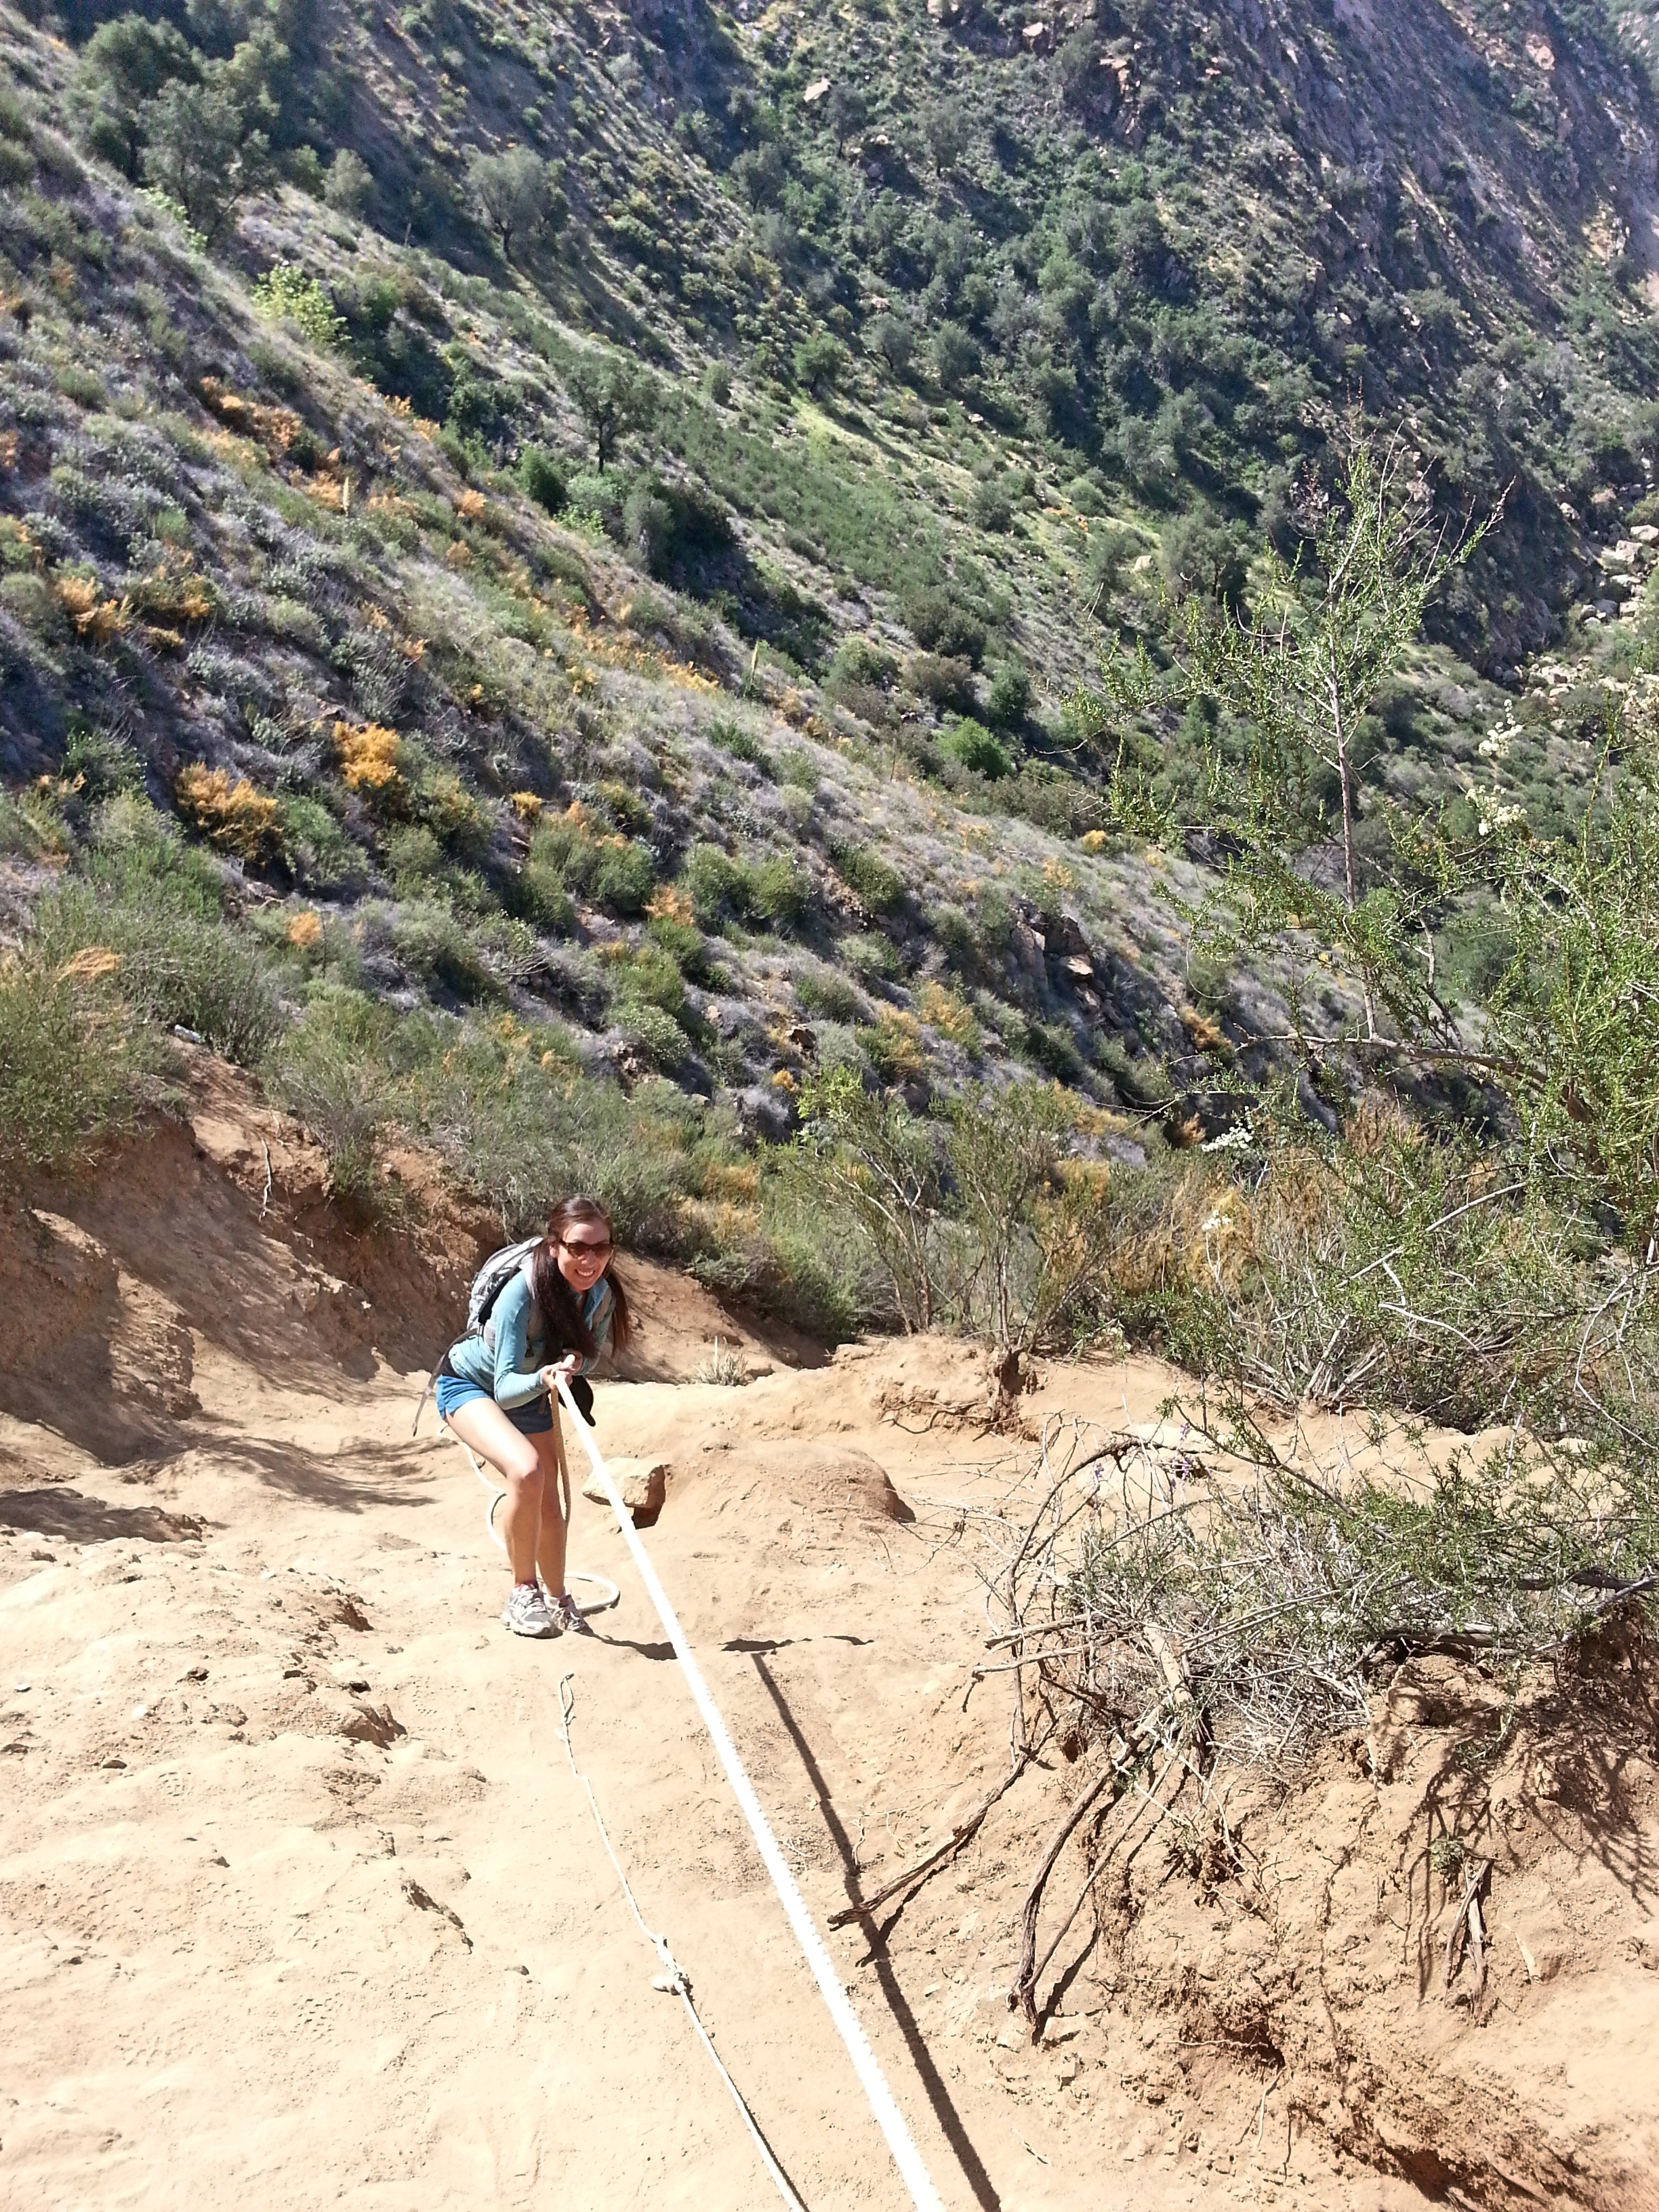 Vanessa using the rope to climb down the steepest section of the trail